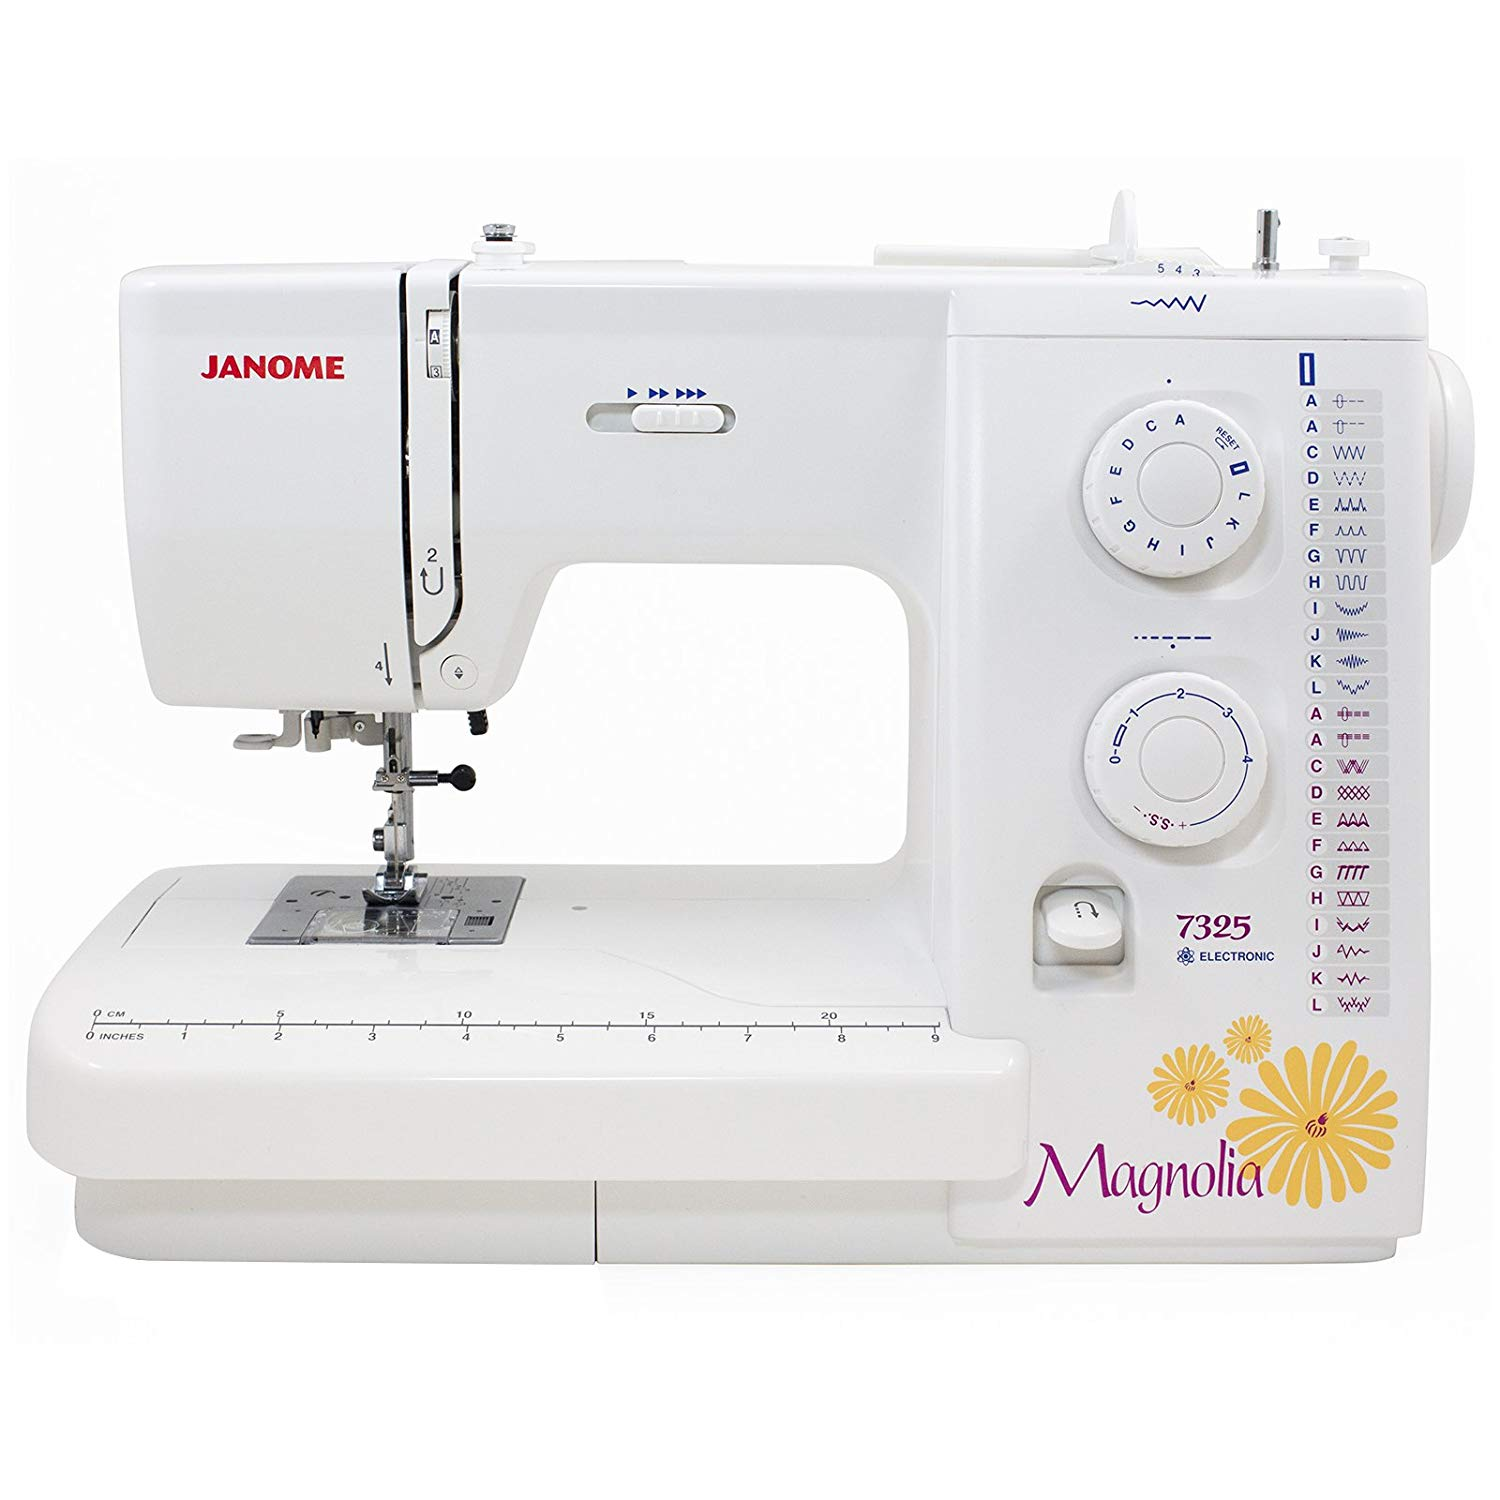 Janome 7325 Review